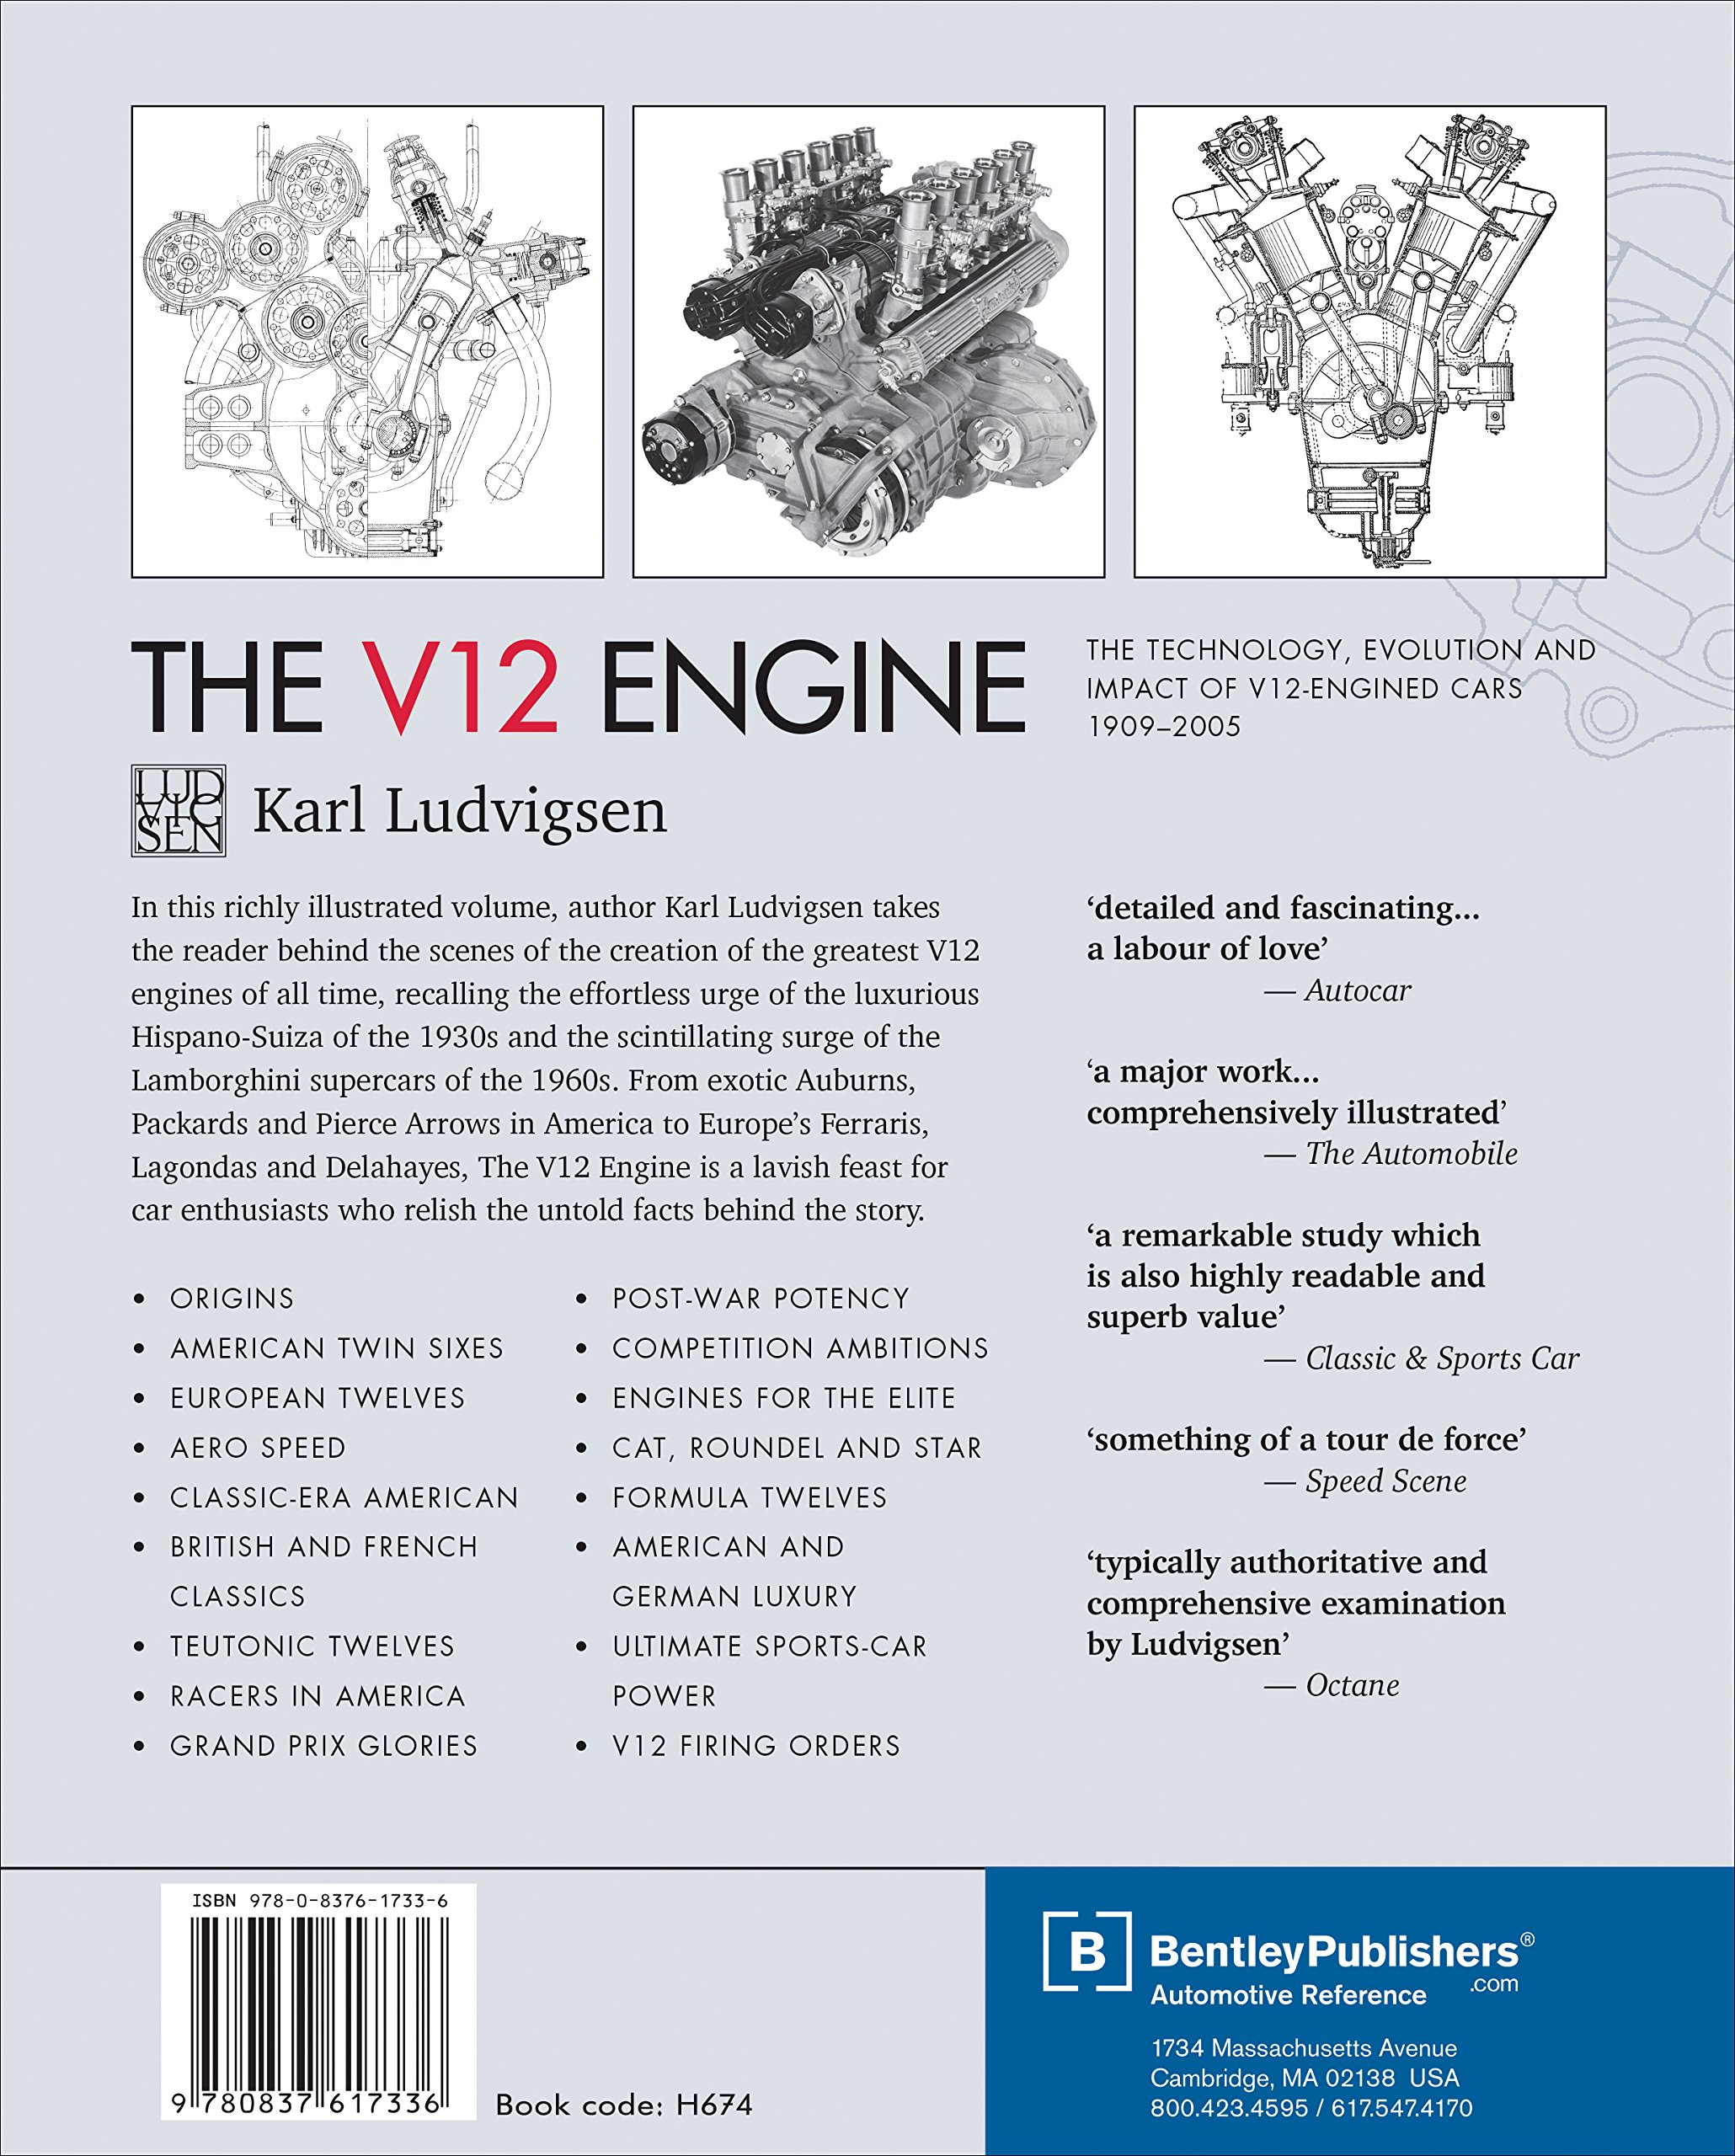 The v12 engine the technology evolution and impact of v12 engined the v12 engine the technology evolution and impact of v12 engined cars 1909 2005 karl ludvigsen 9780837617336 amazon books fandeluxe Gallery